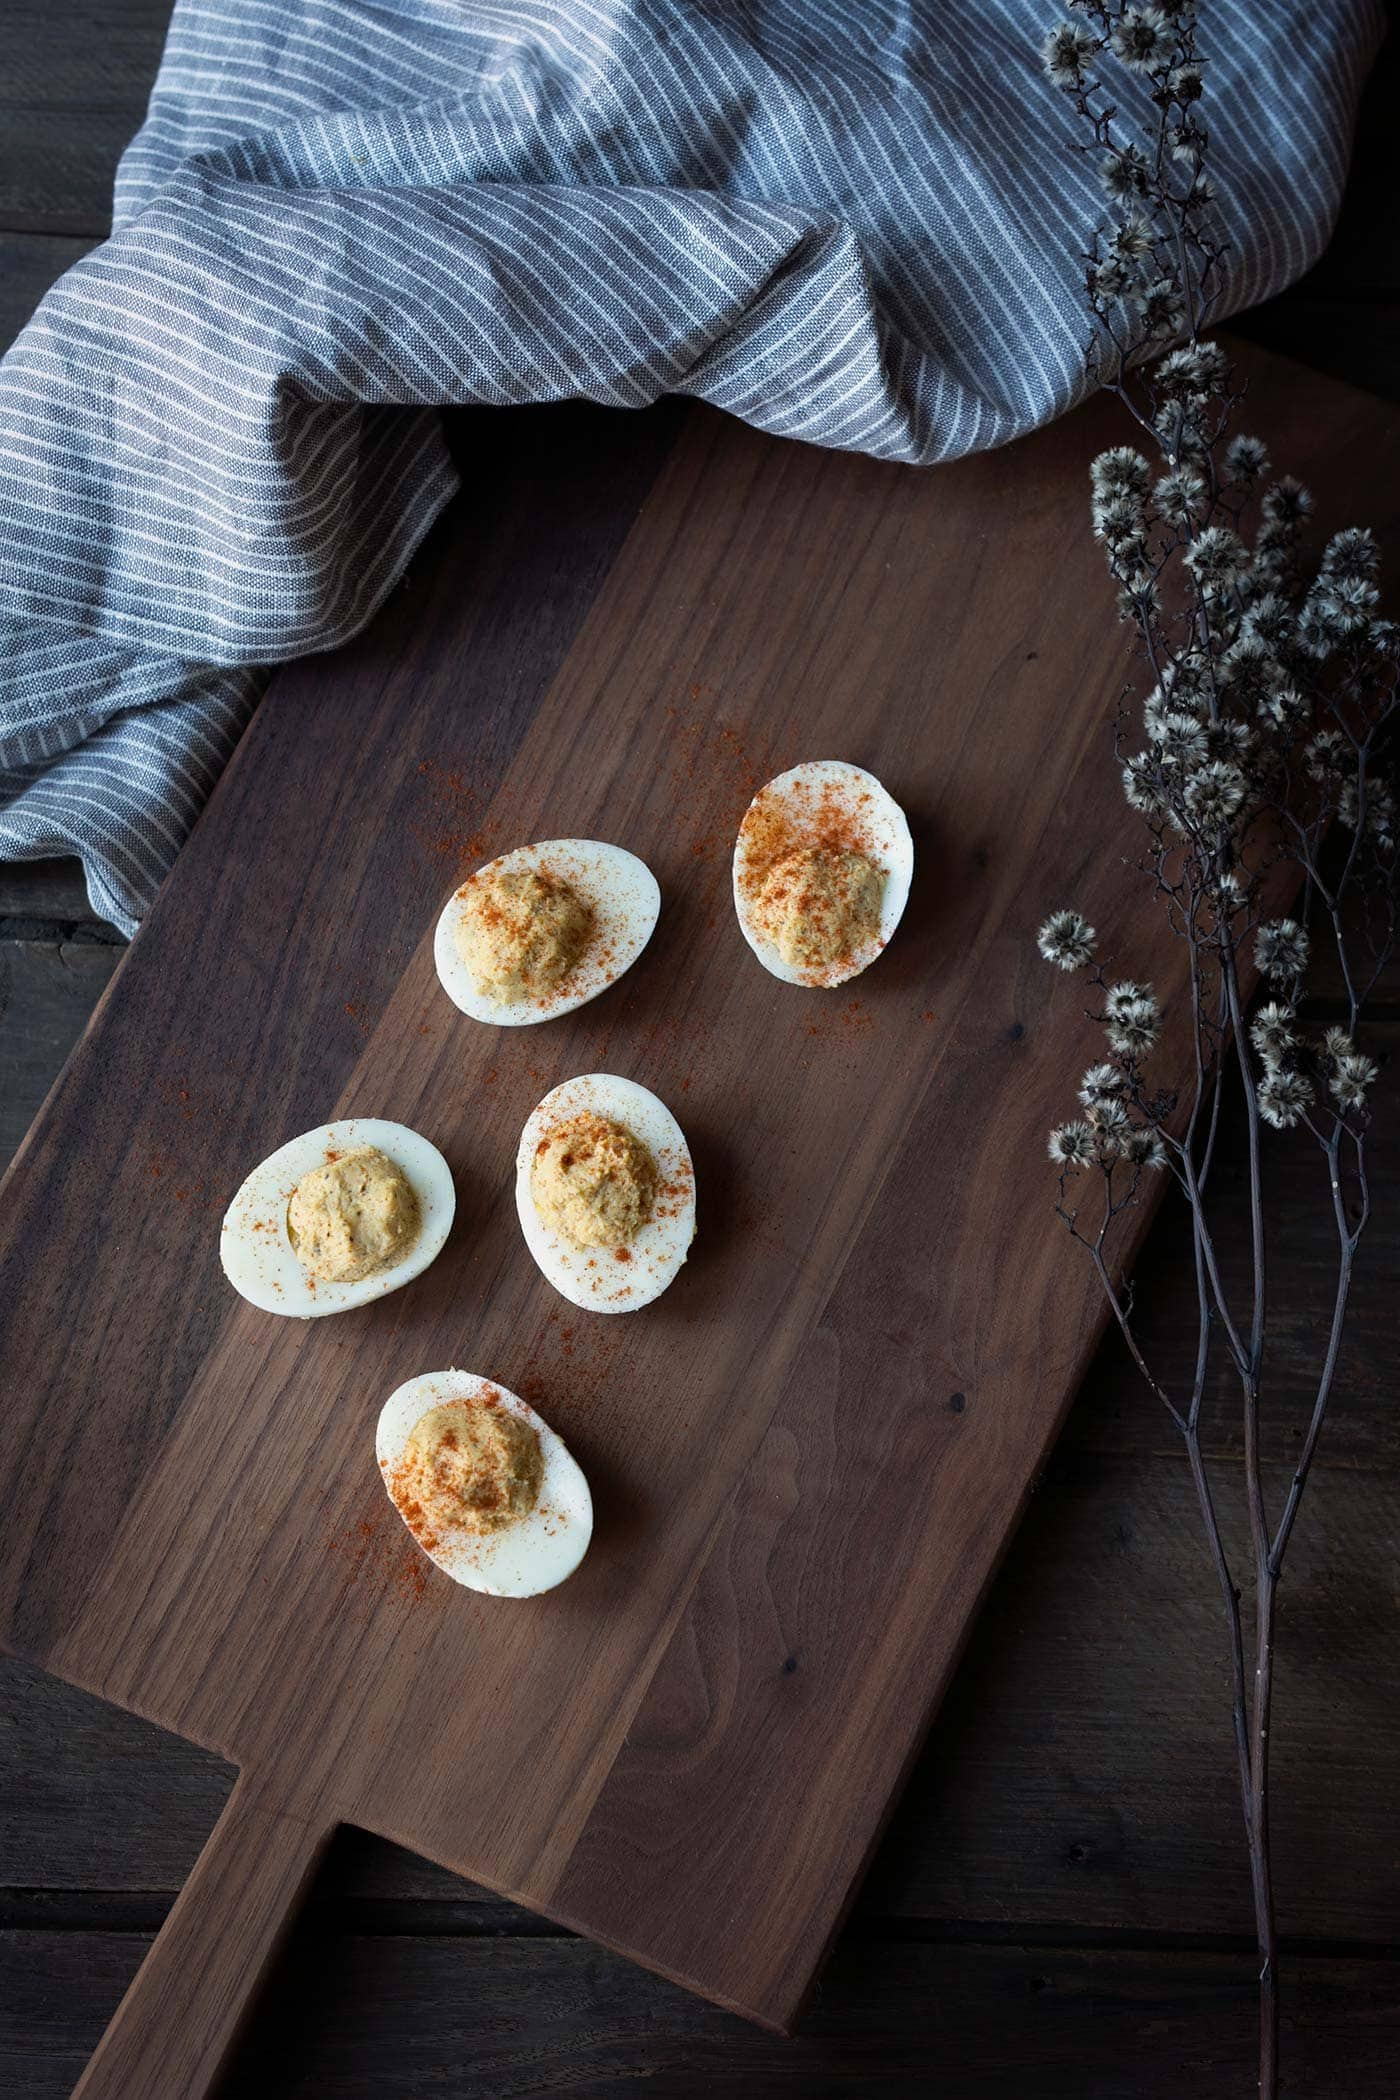 Old Bay Deviled Eggs are an easy, flavorful appetizer that's ready in under 30 minutes. They're also low carb and gluten-free! Get the recipe from SavorySimple.net.